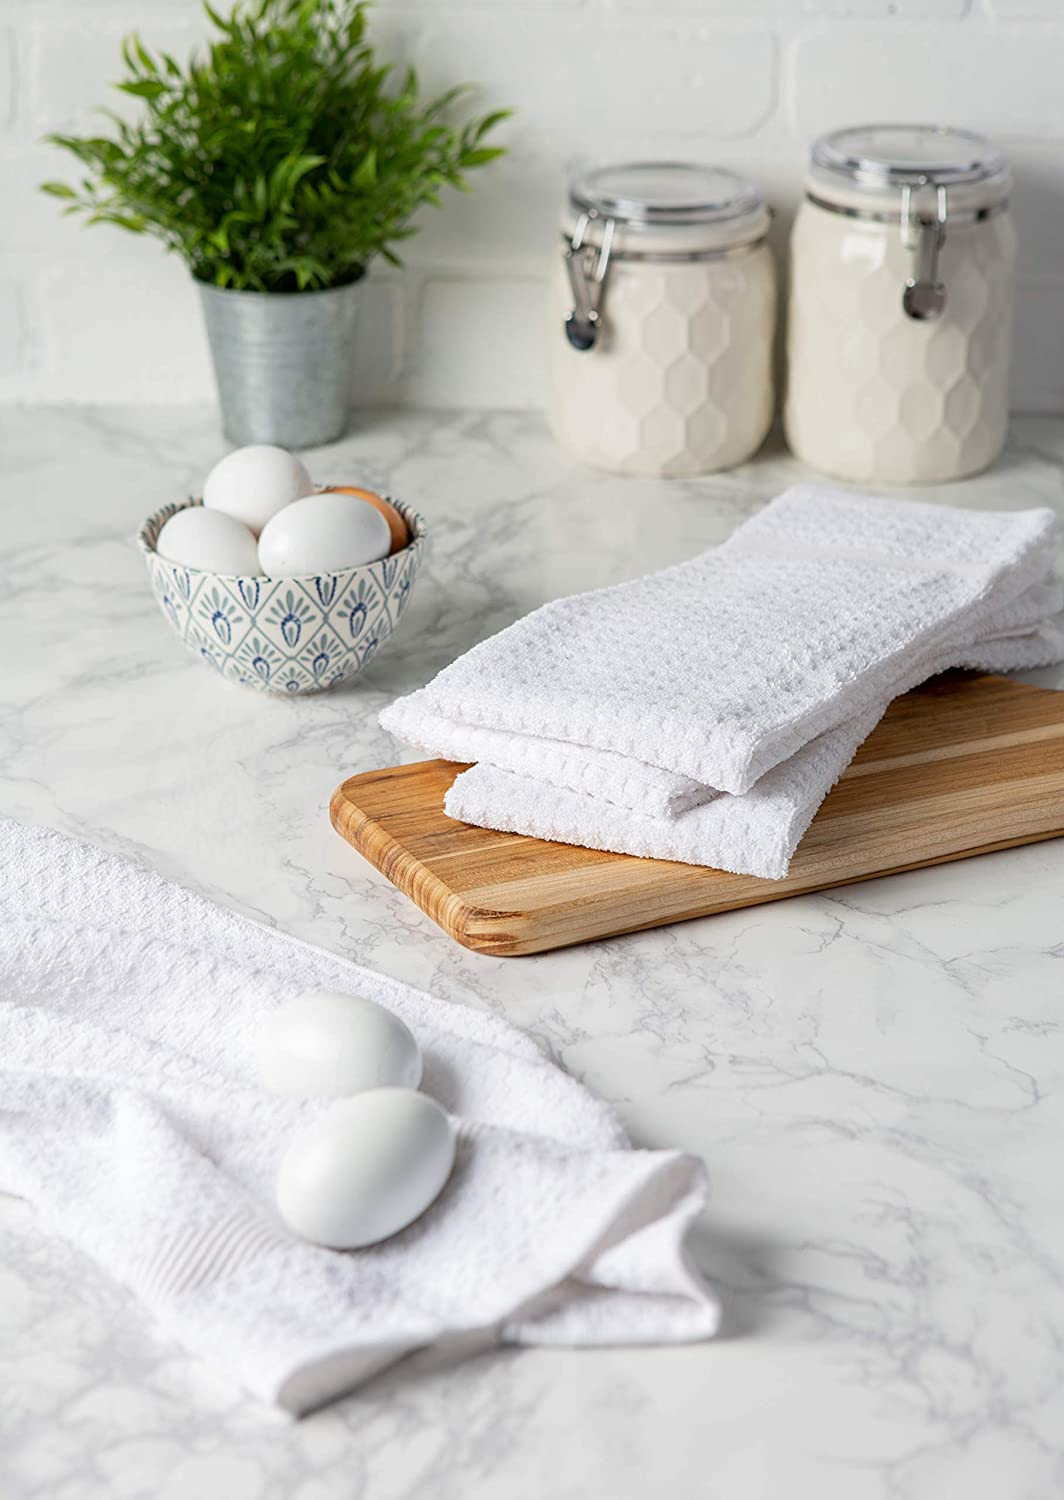 15 x 26 Set of 4 DII Cotton Waffle Terry Dish Towels Ultra Absorbent Drying /& Cleaning Kitchen Towels-White 15 x 26 Set of 4 CAMZ32695 Heavy Duty